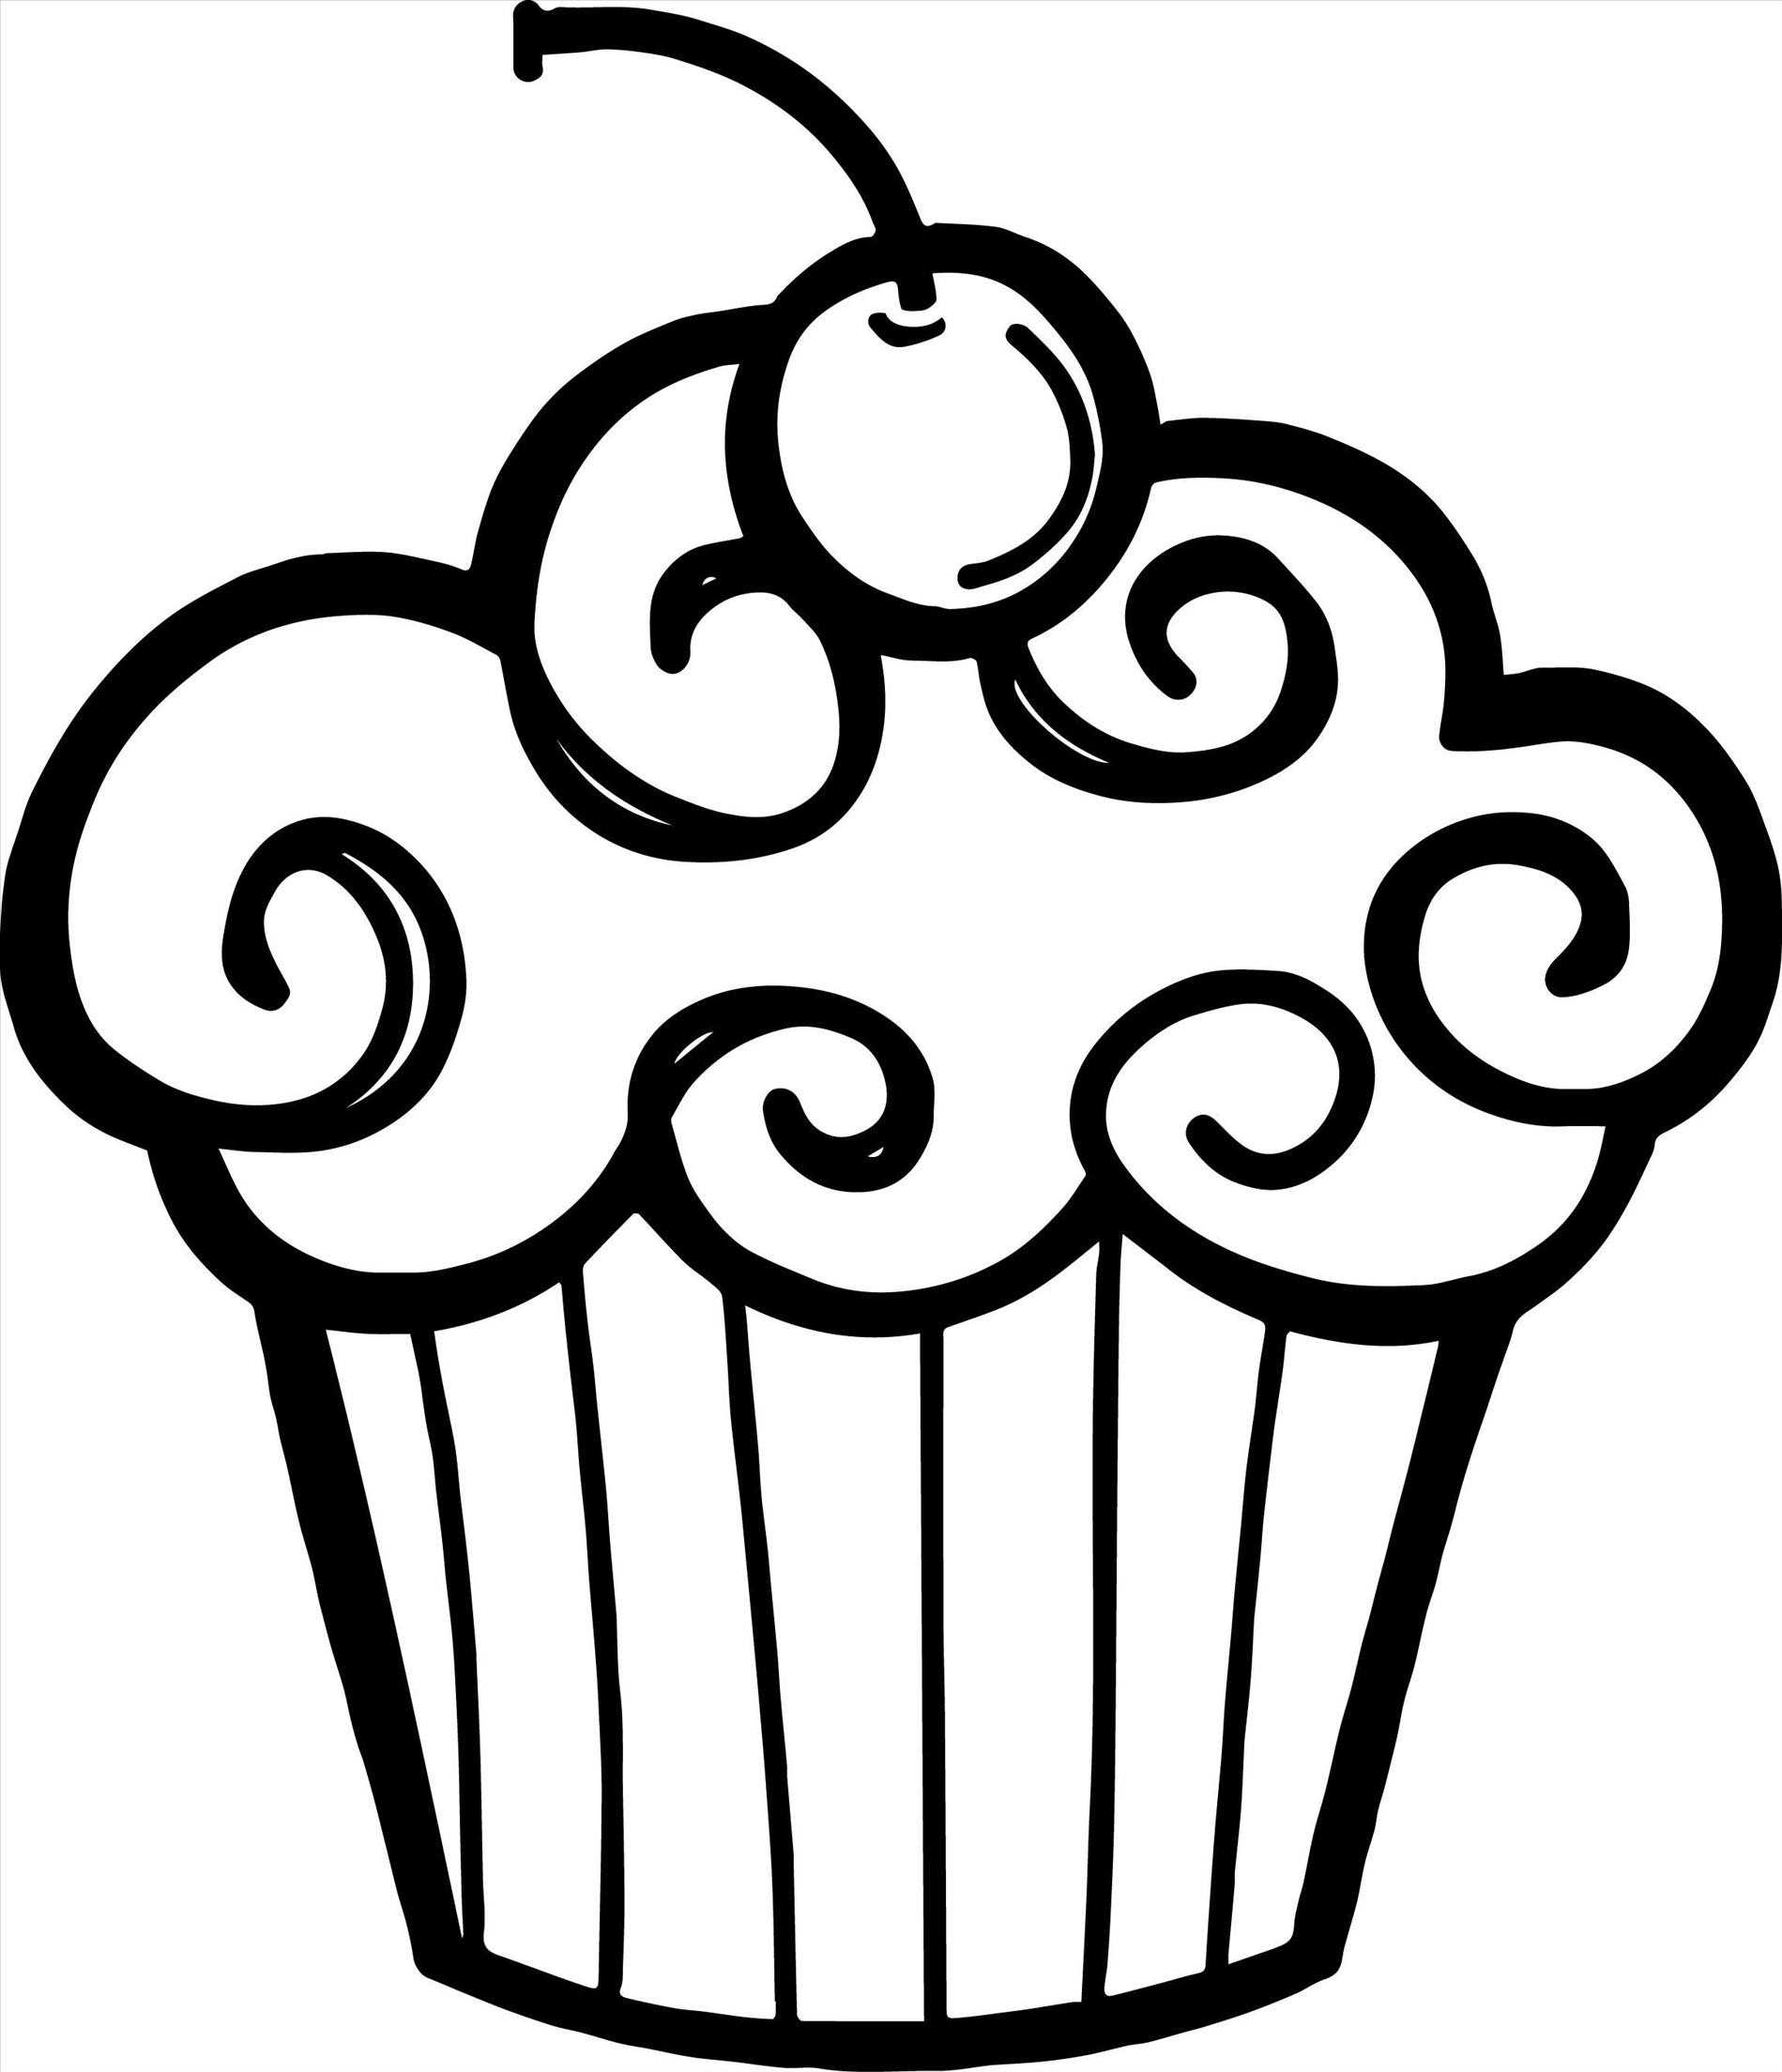 Cupcake clipart black and white 6 » Clipart Station.